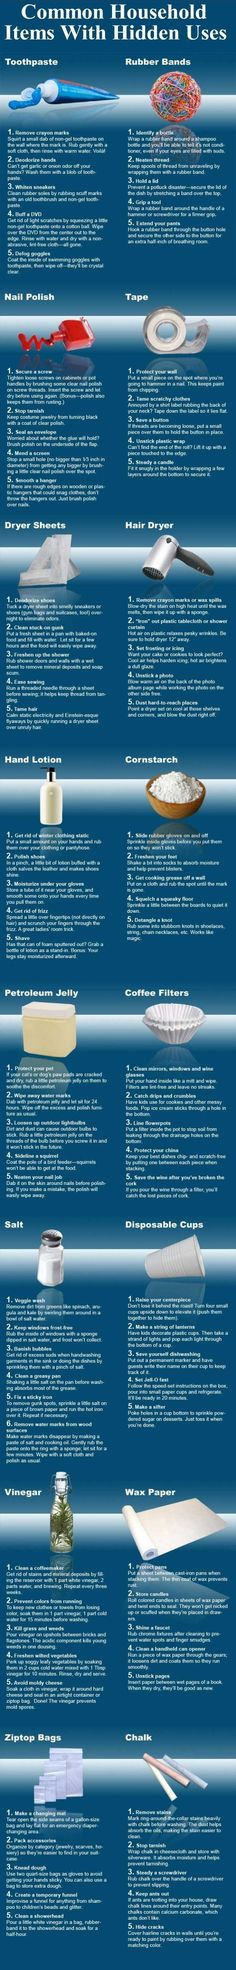 Common household items with hidden uses diy diy ideas easy diy how to remedies remedy tips tutorials life hacks life hack money saving good to know